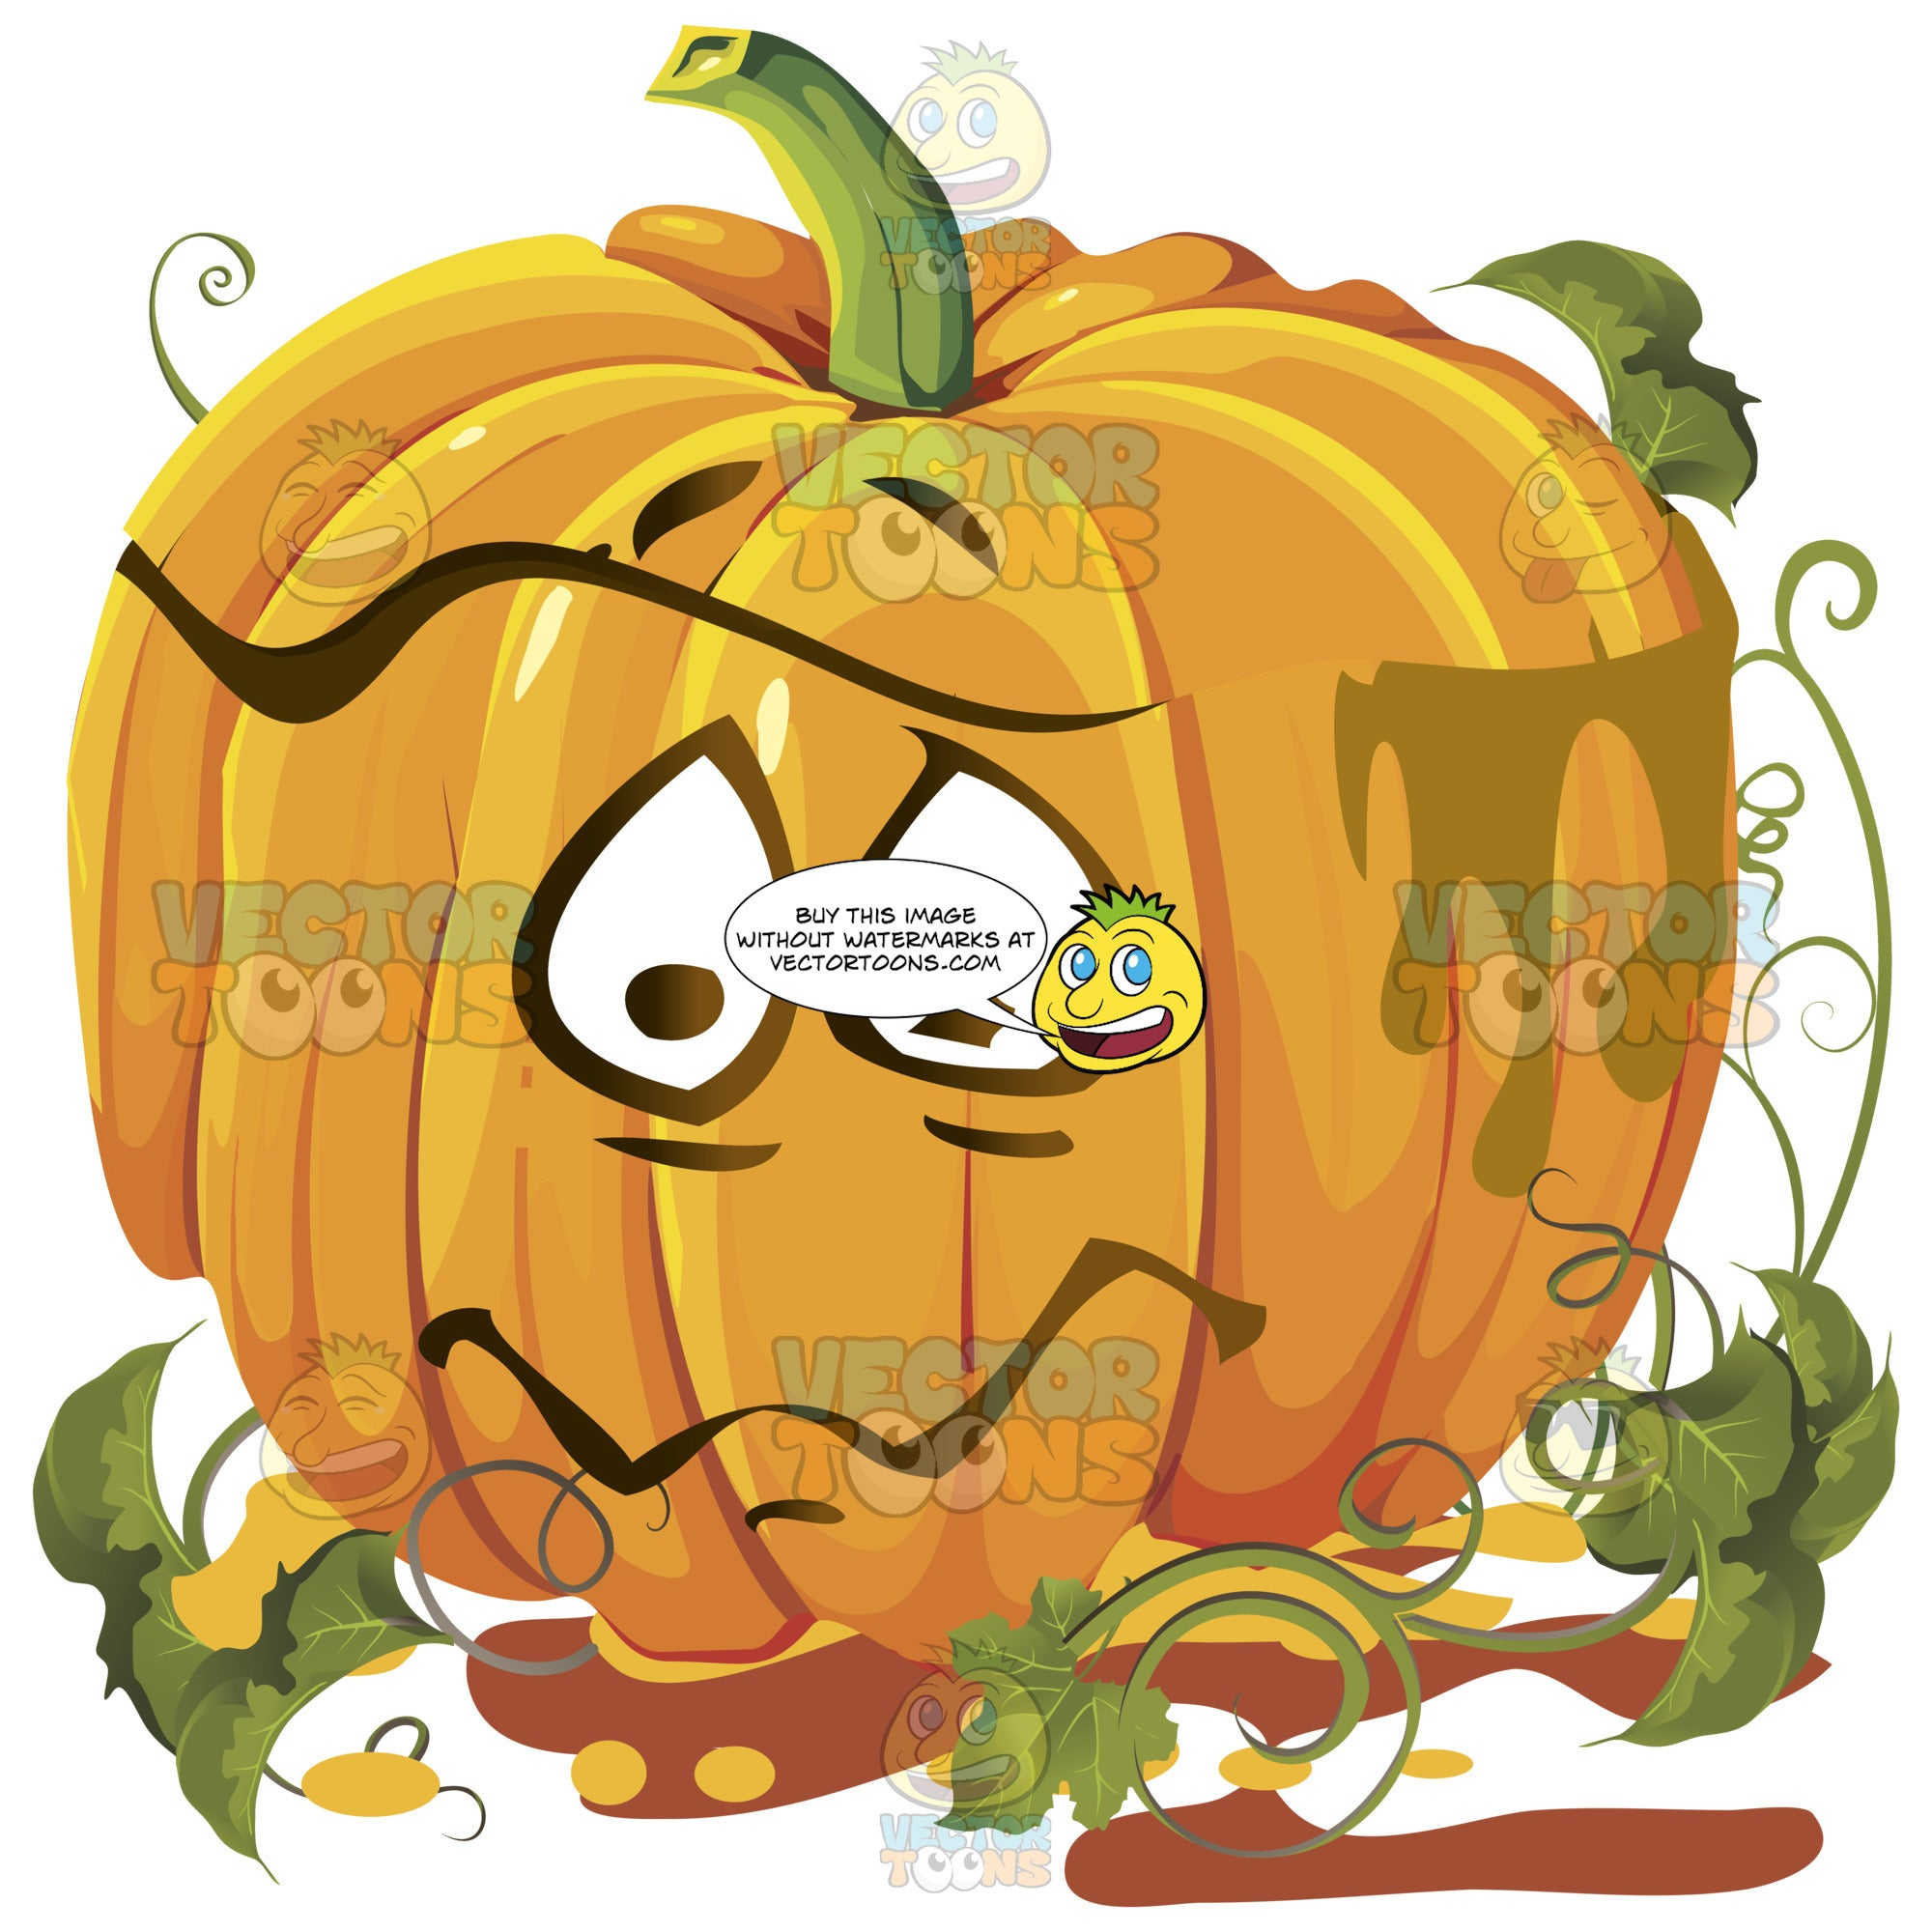 Sad, Tearful Orange Pumpkin Face With Green Vines